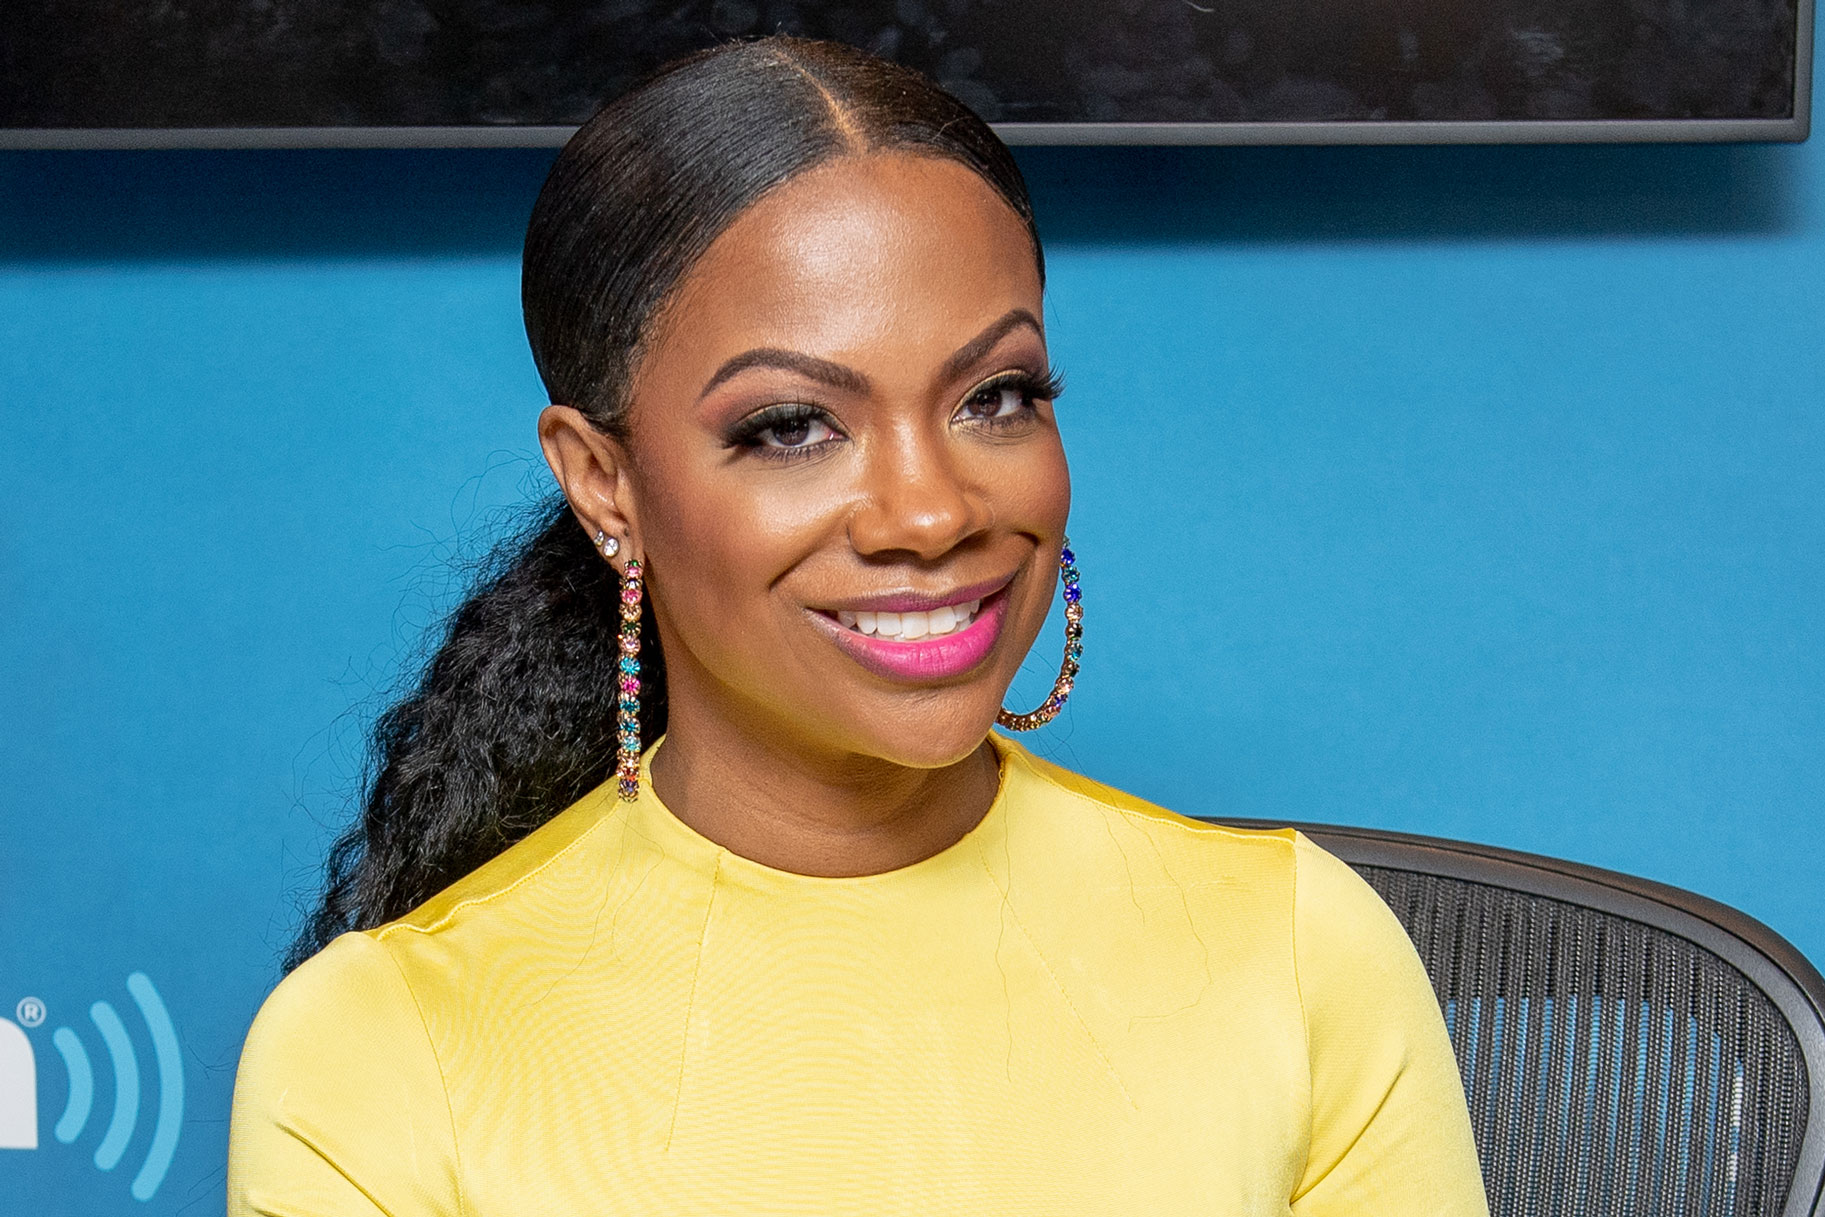 kandi-burruss-breaks-the-internet-after-she-drops-her-clothes-to-bathe-in-milk